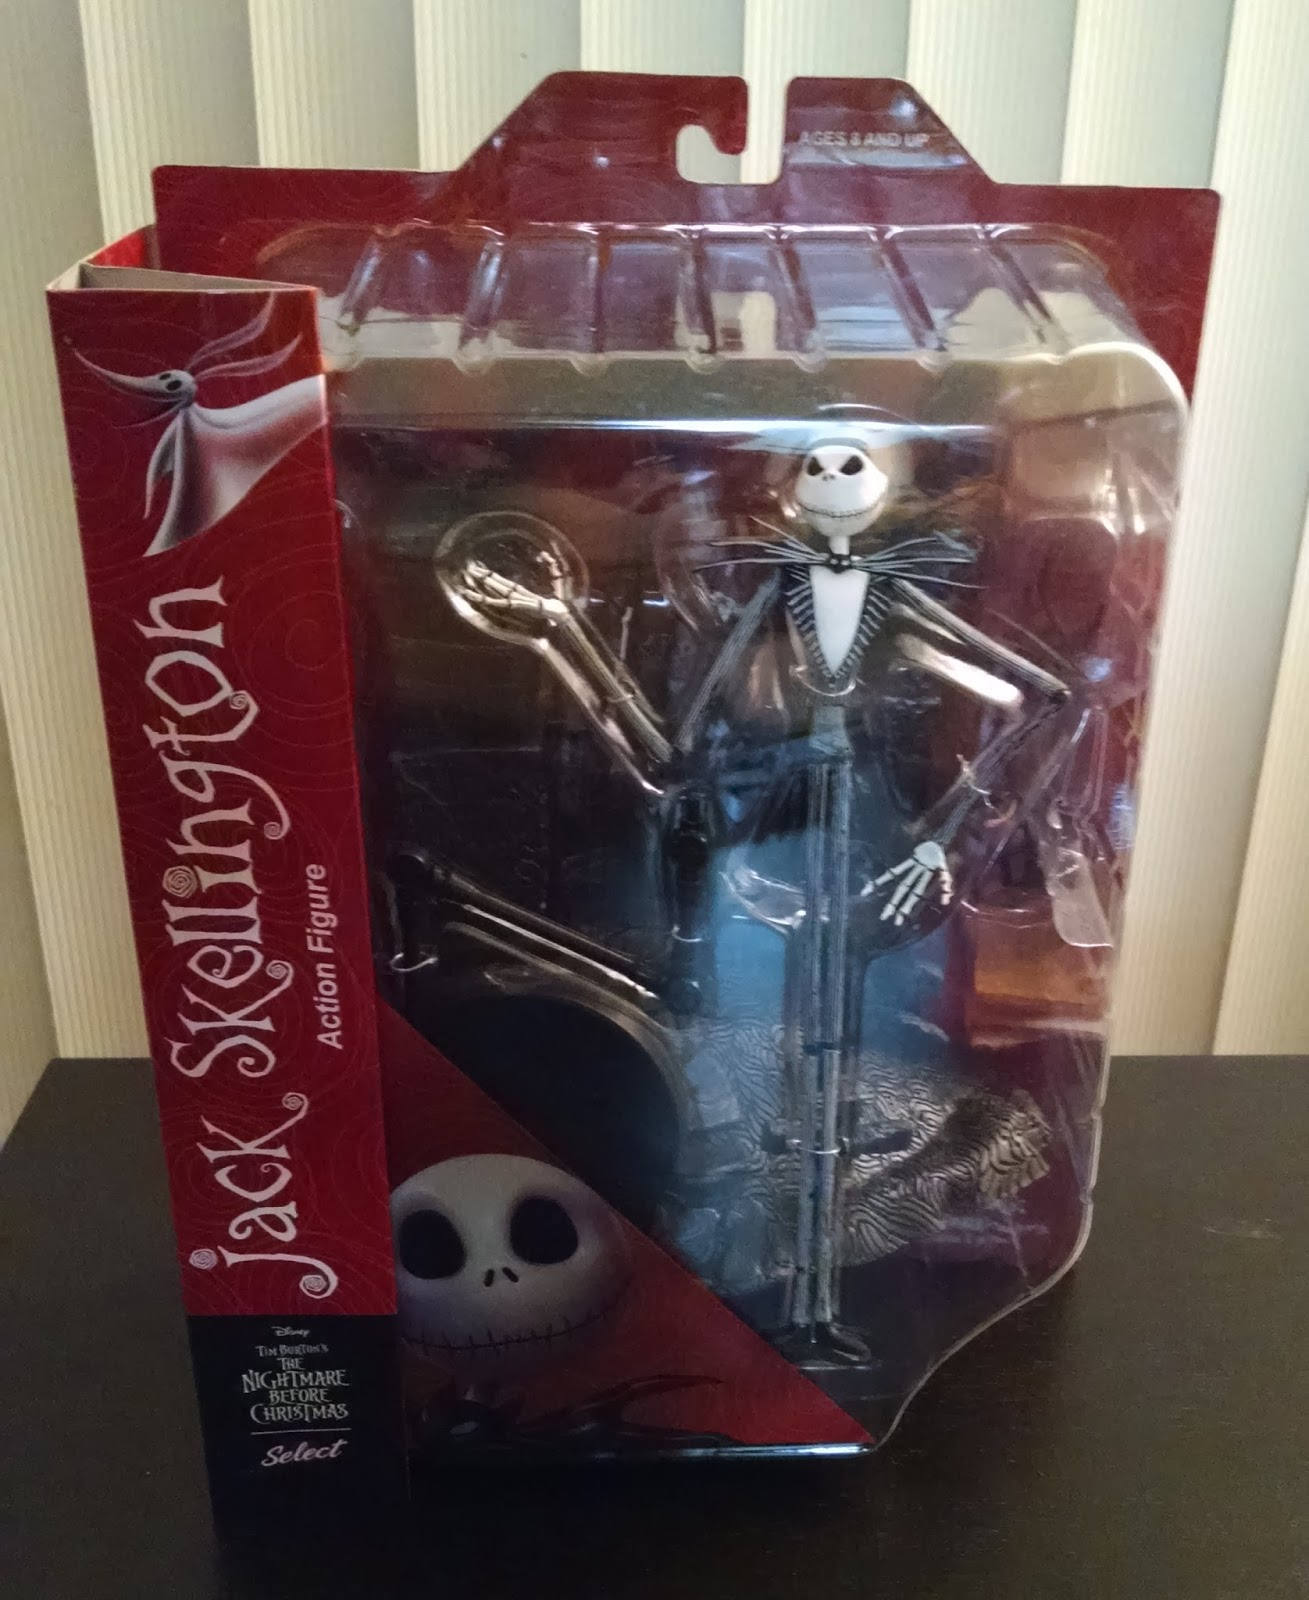 Toy Review: Diamond Select Nightmare Before Christmas Jack Skellington